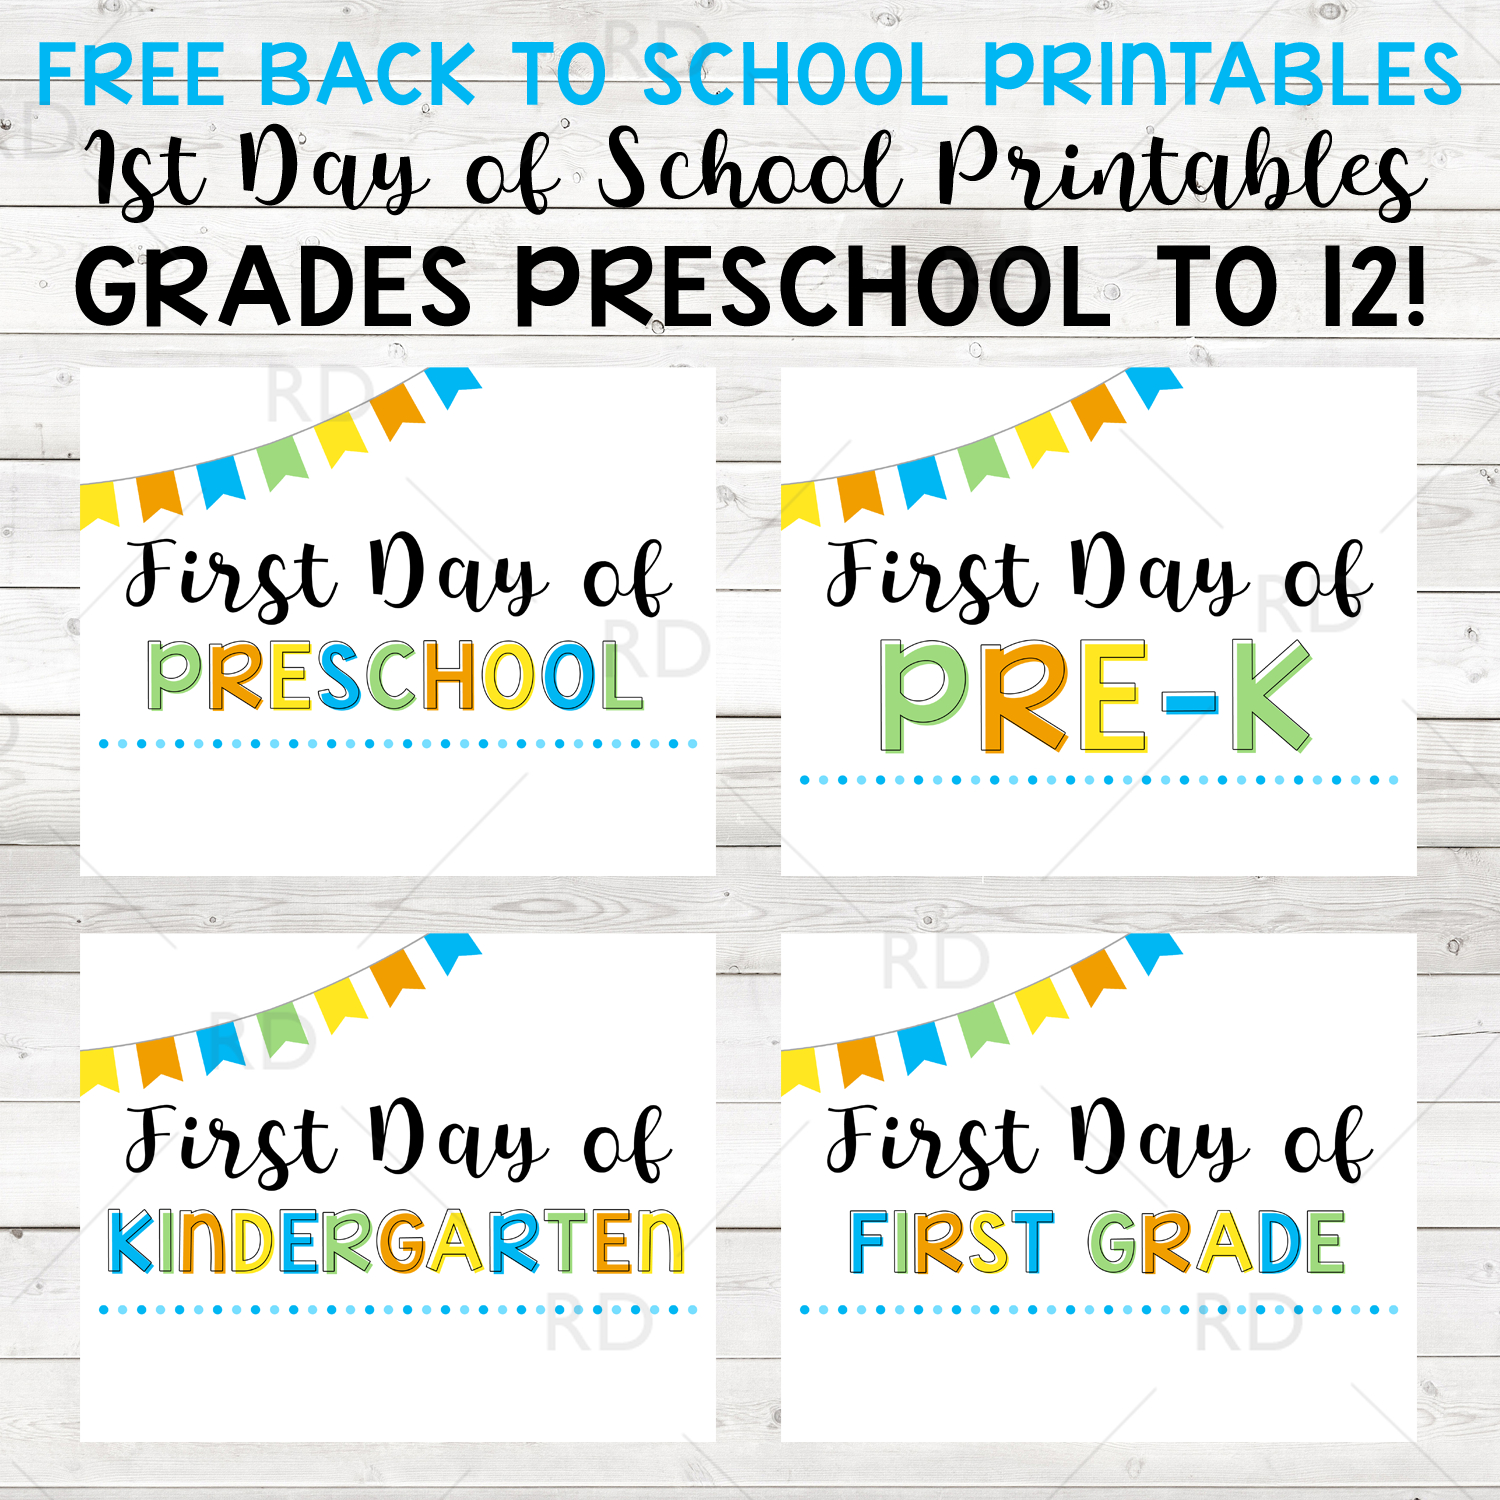 Back To School Free Printables! First Day Of School Grades Preschool - Free School Printables